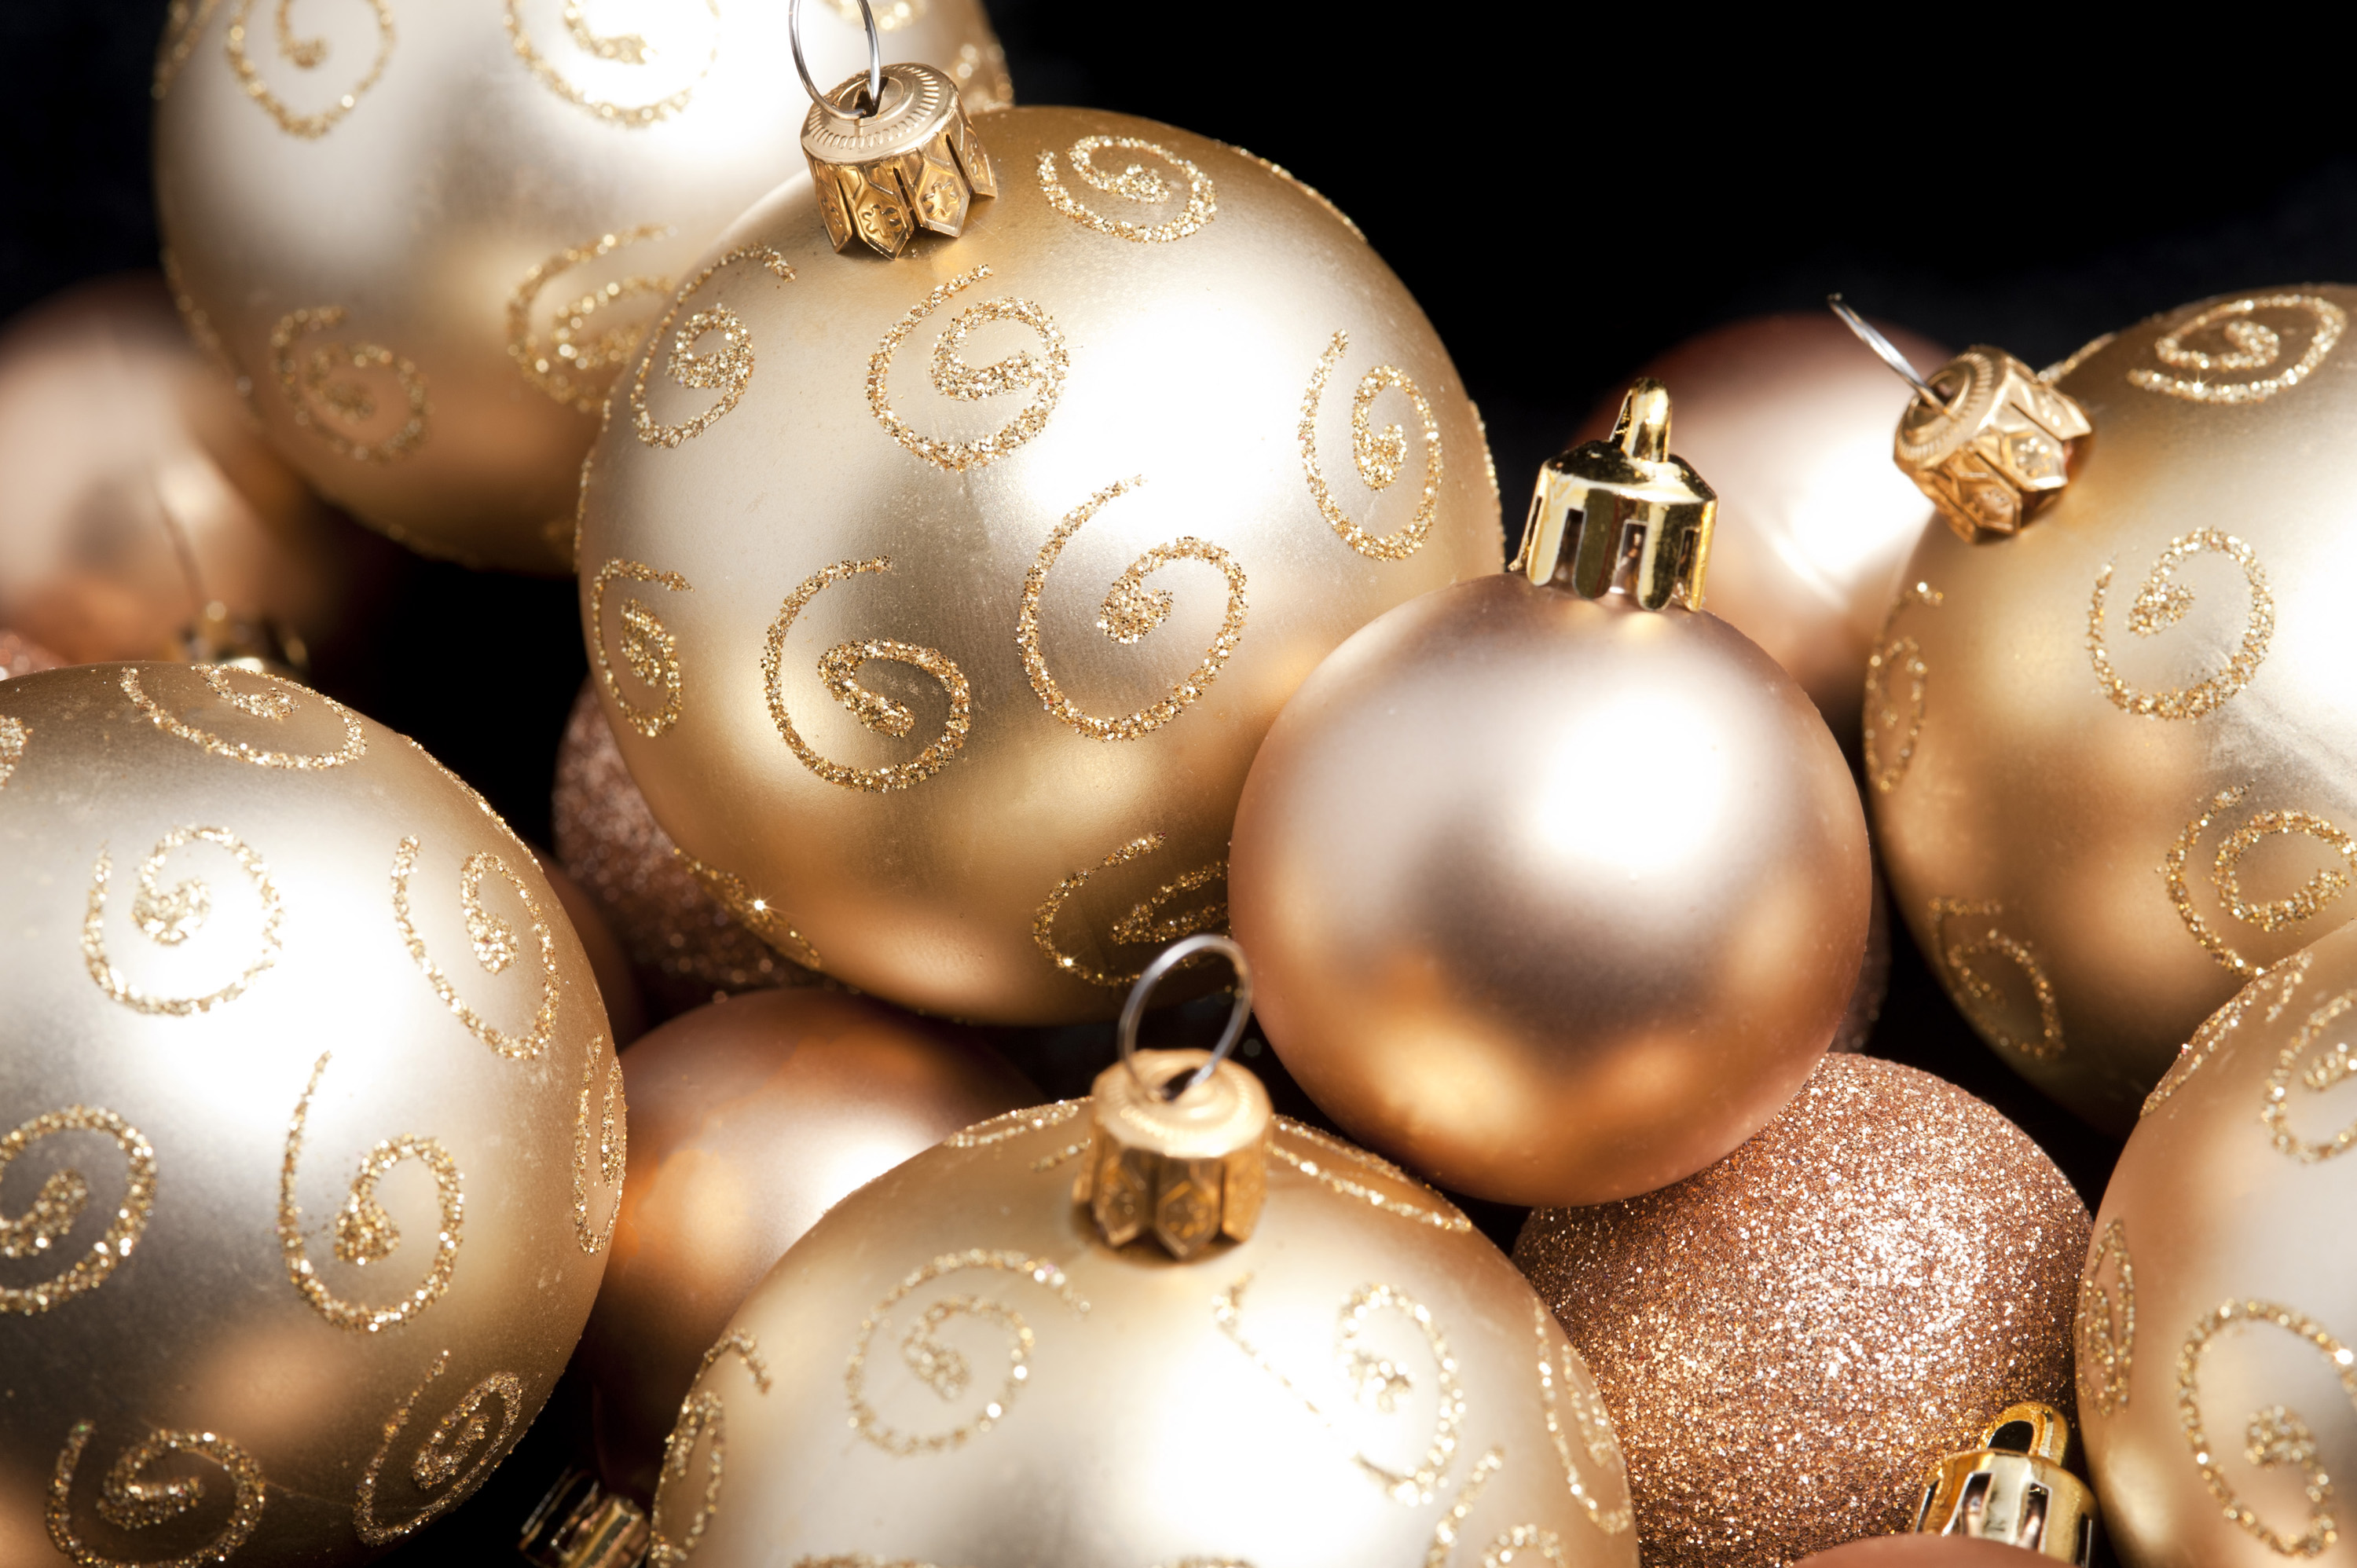 Christmas 3d Wallpaper Download Photo Of Golden Christmas Balls Free Christmas Images